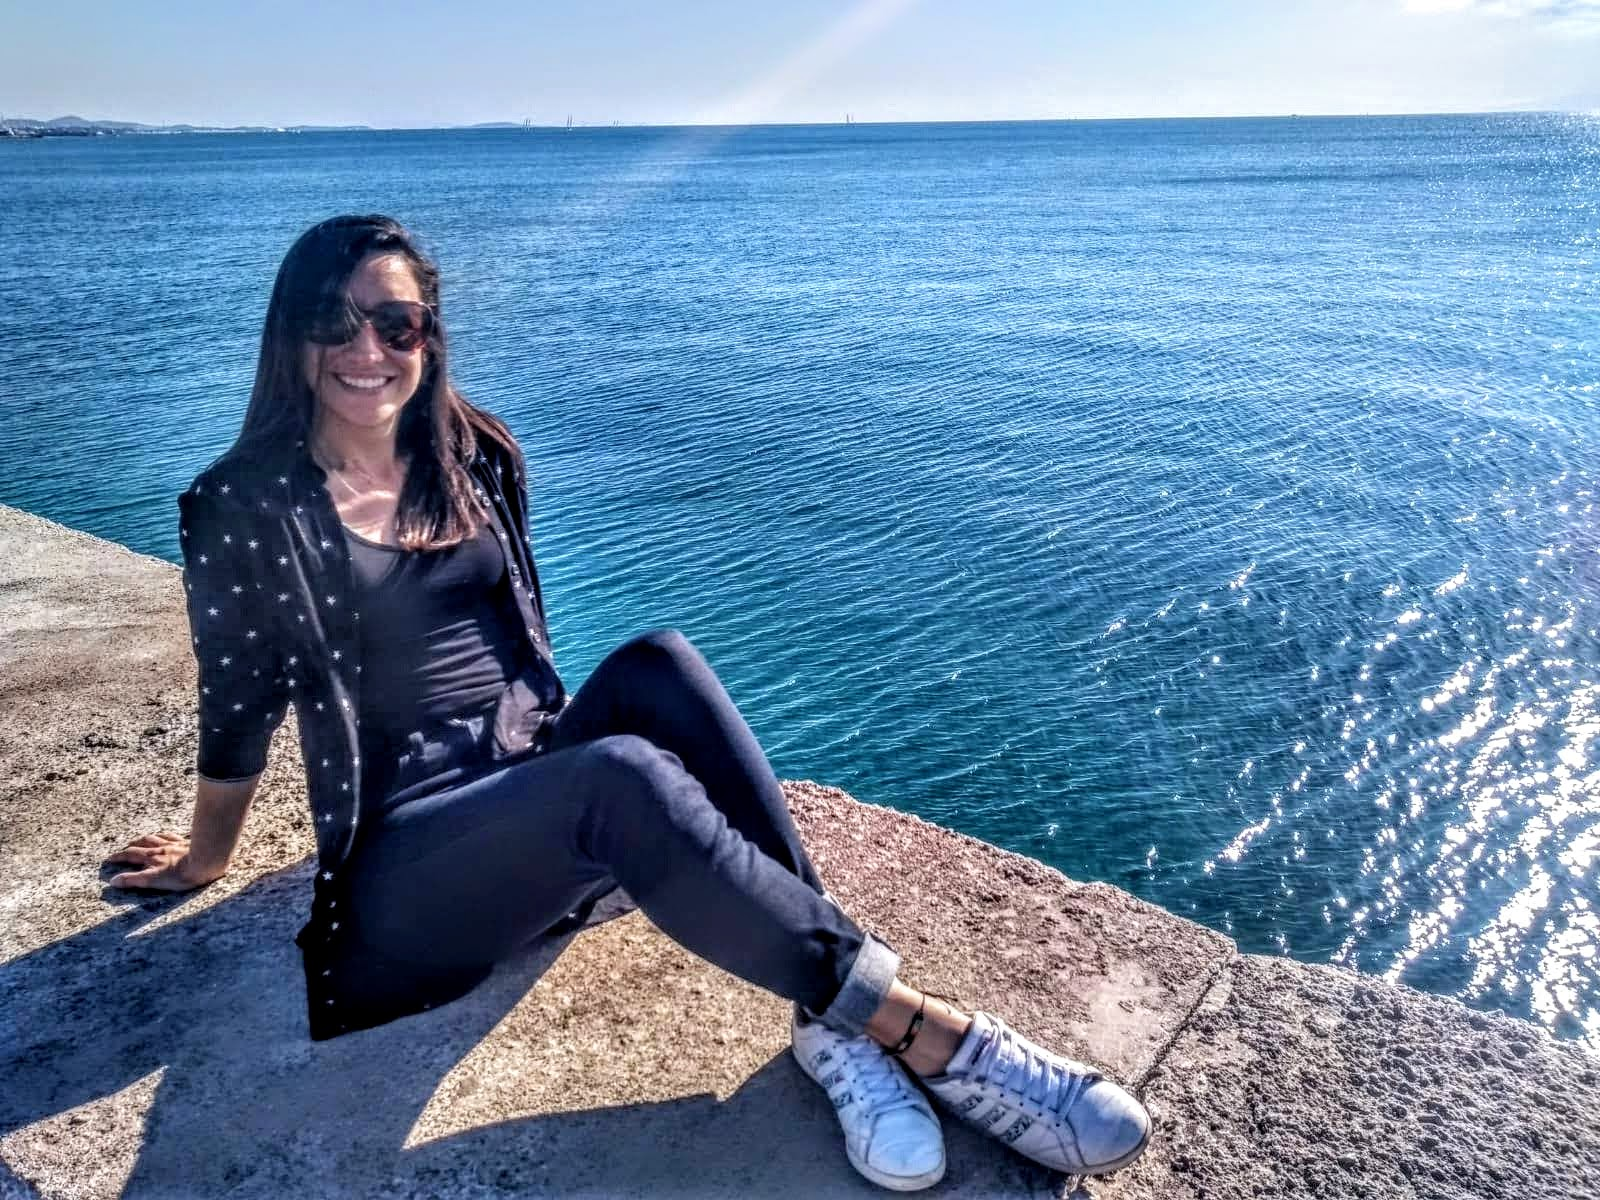 Carolina sitting by the sea at Flisvos Marina in Athens.  This is not a bikini photo, but a representation of a life change.  Her smile and relaxed position represents the happiness of being able to dedicate her life to help people on living healthier lives.